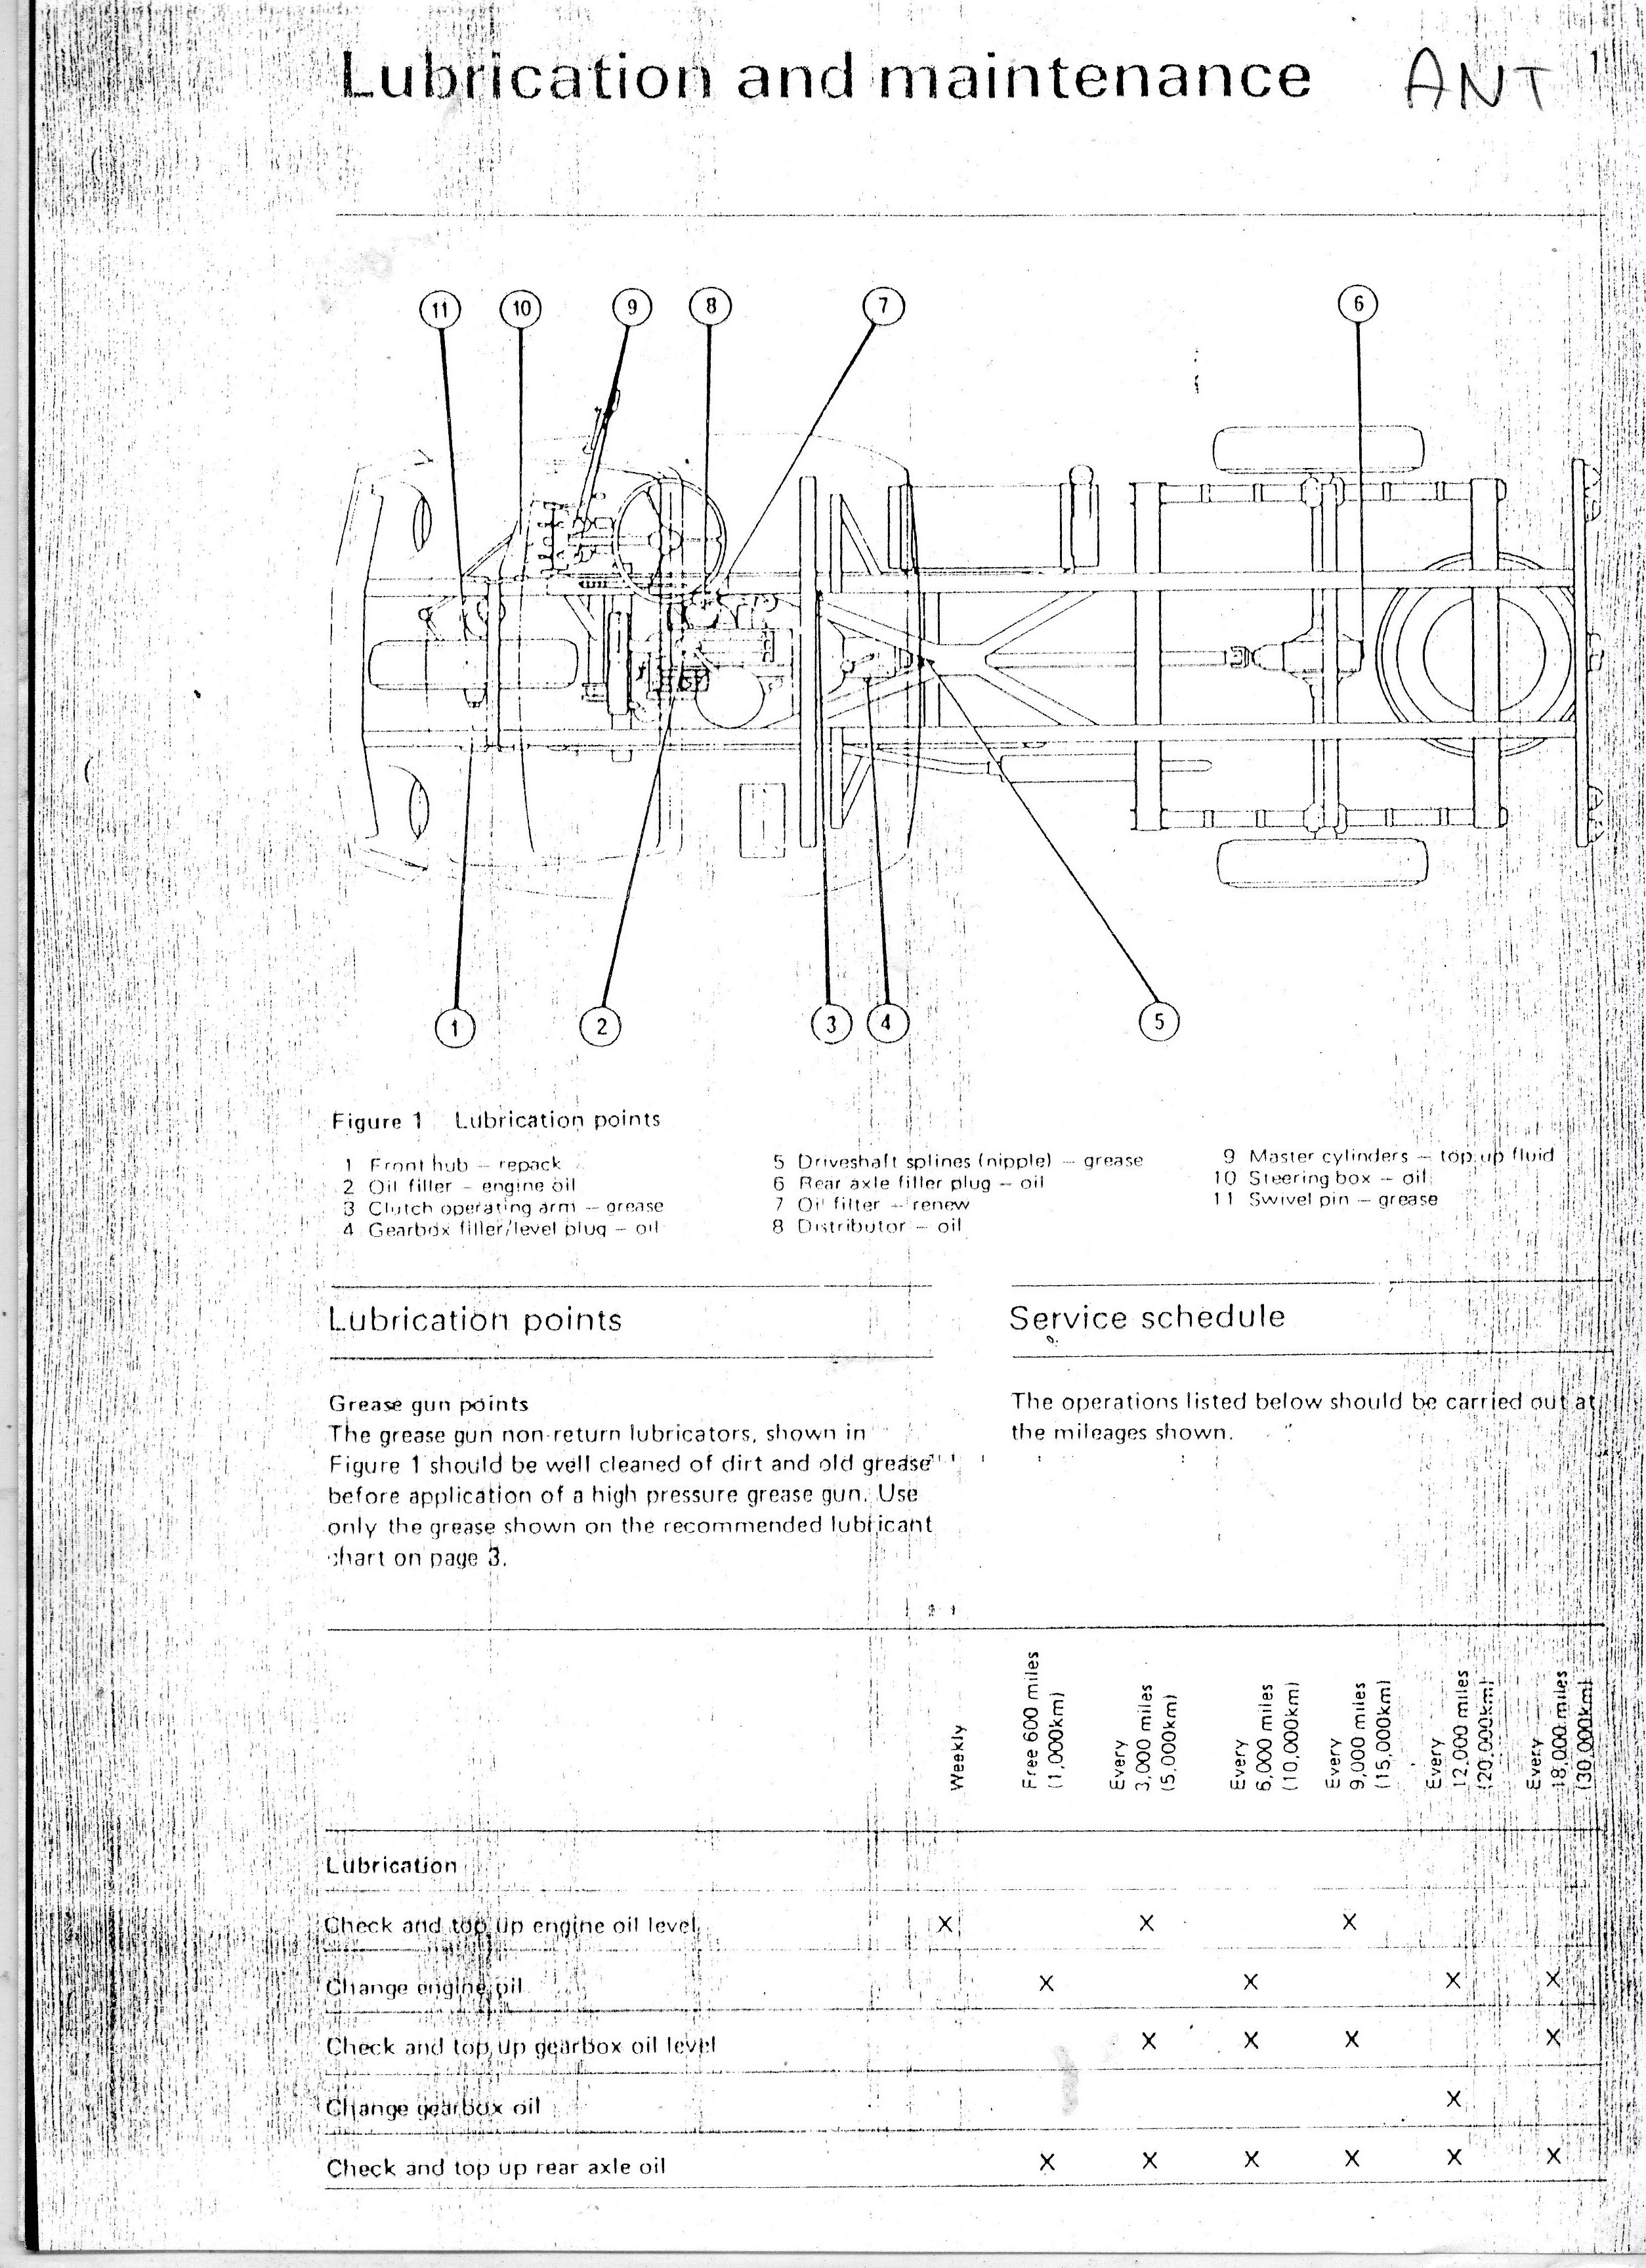 Reliant Spares Wiring Diagrams Master Socket Diagram On For Uk Phone Extension Bond Bug